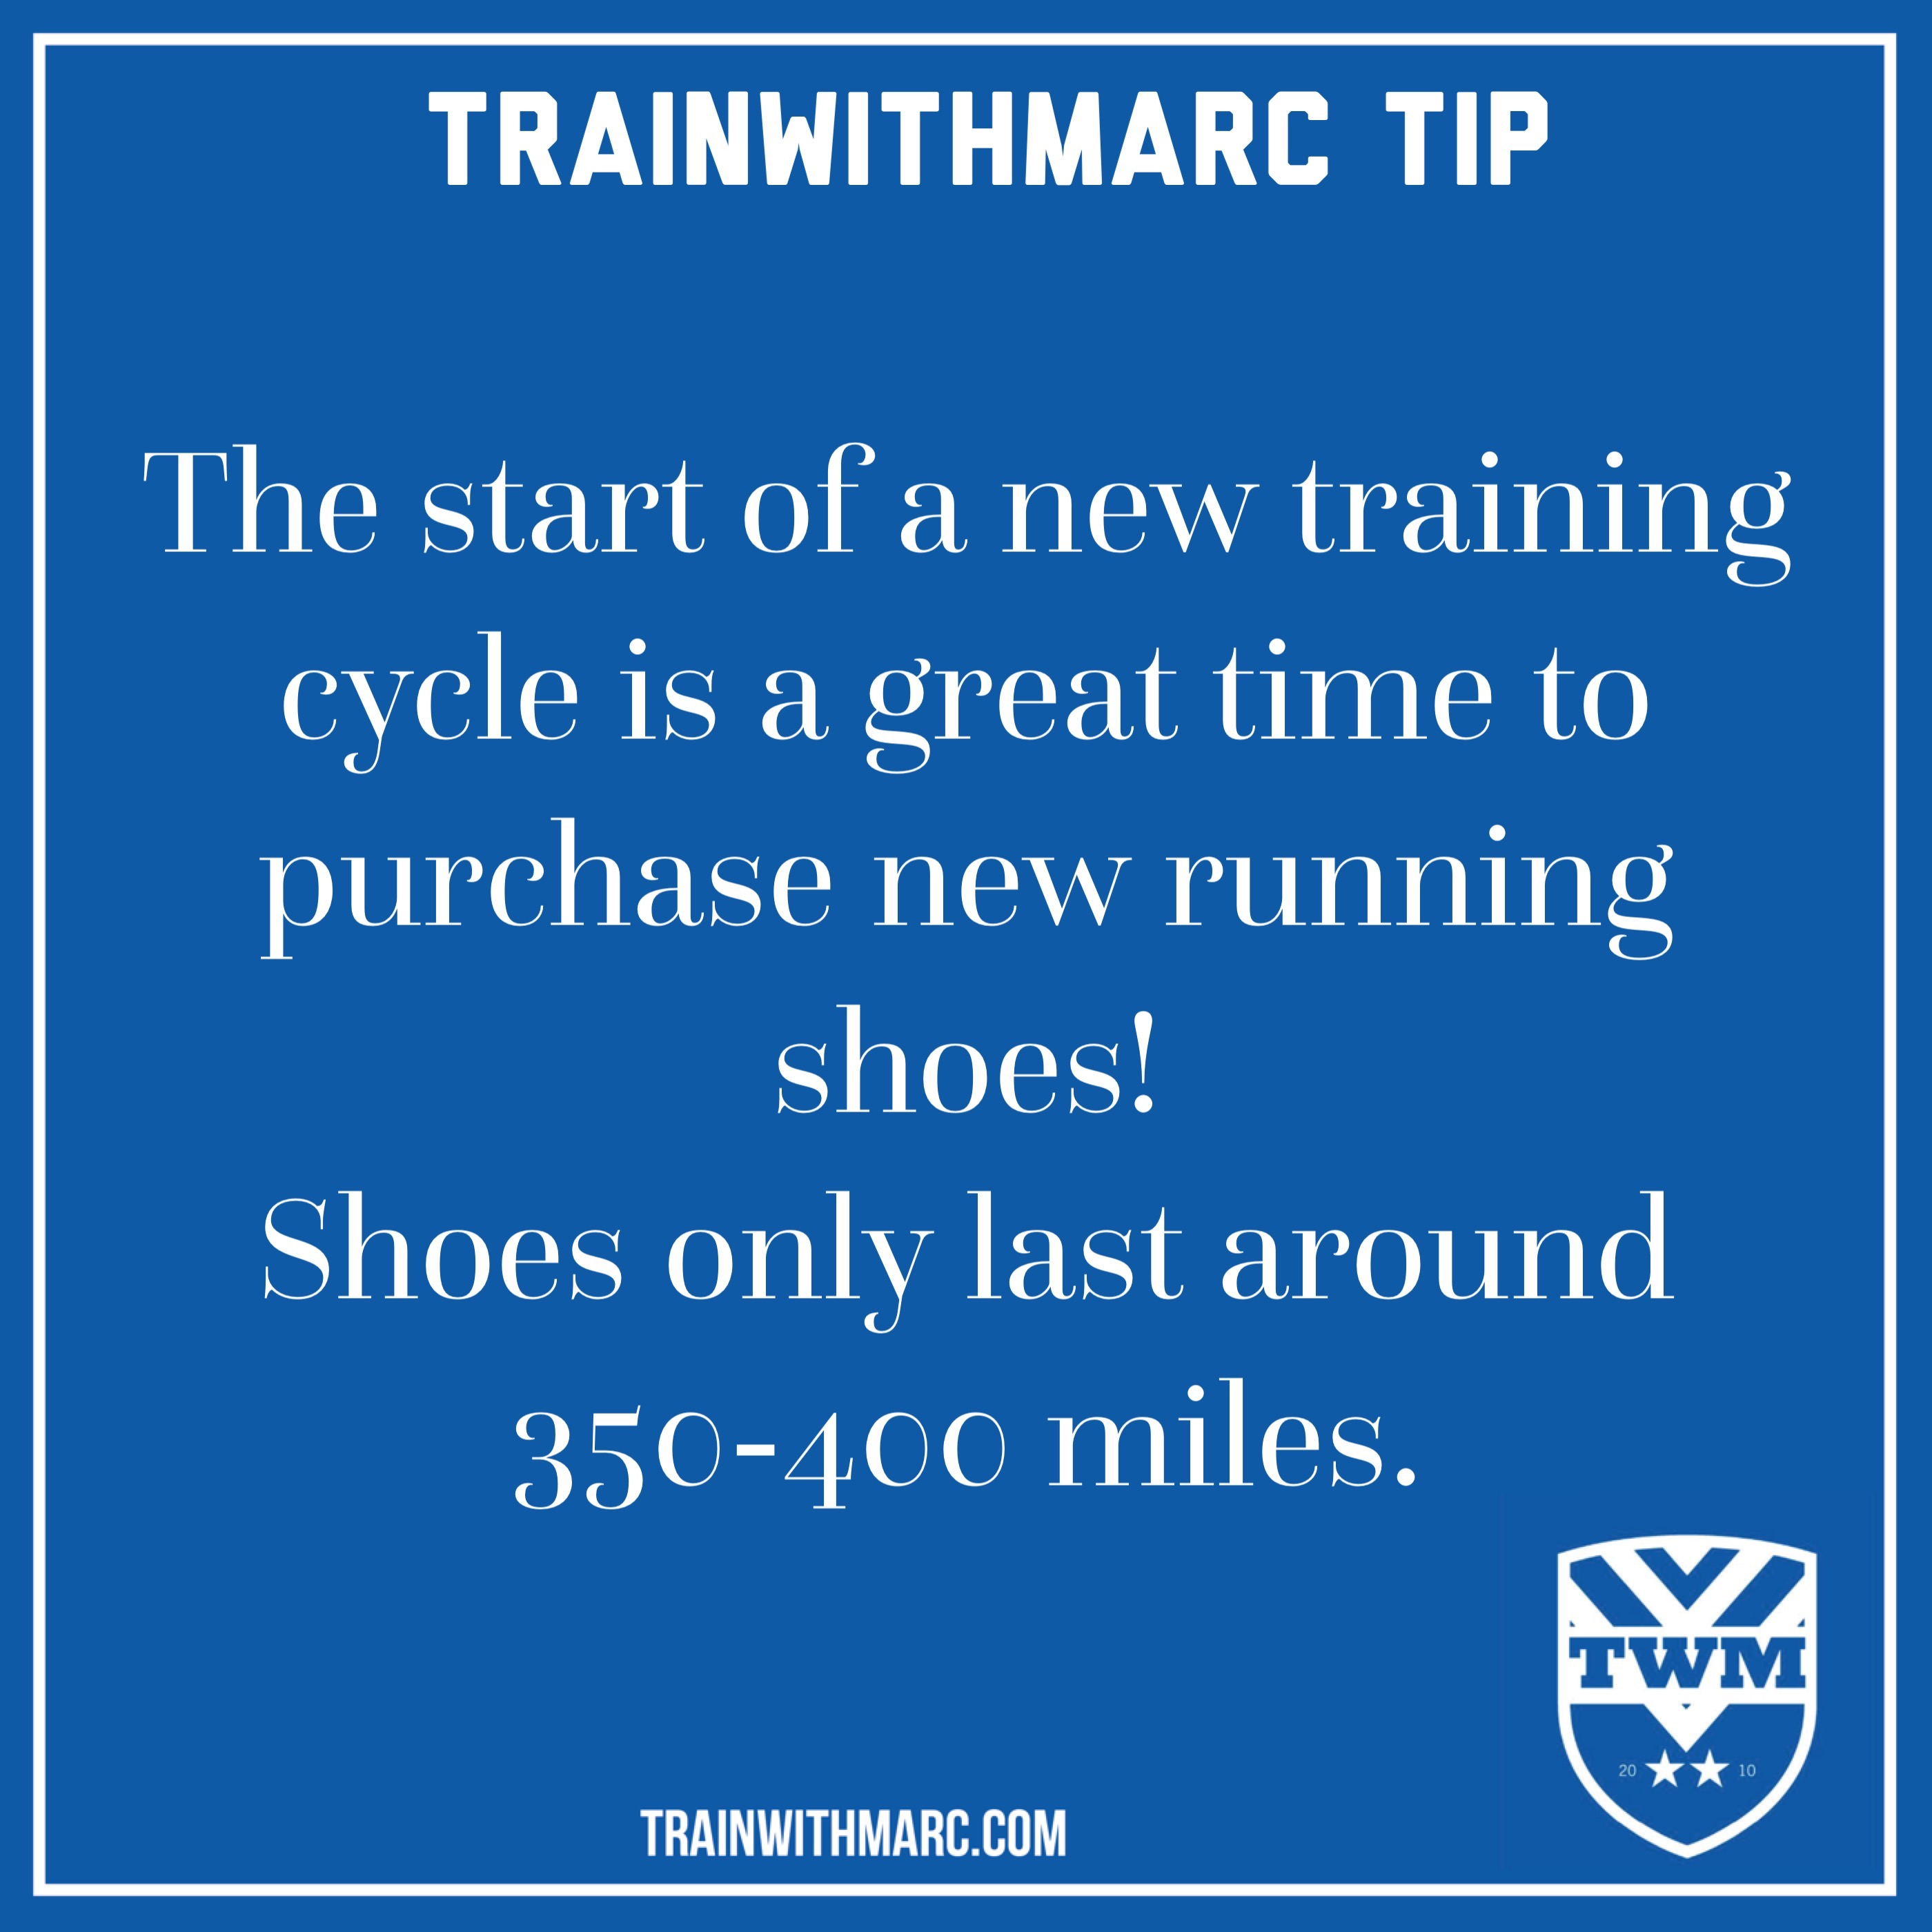 Running Shoe Tip: the best time to buy new running shoes is after a training cycle